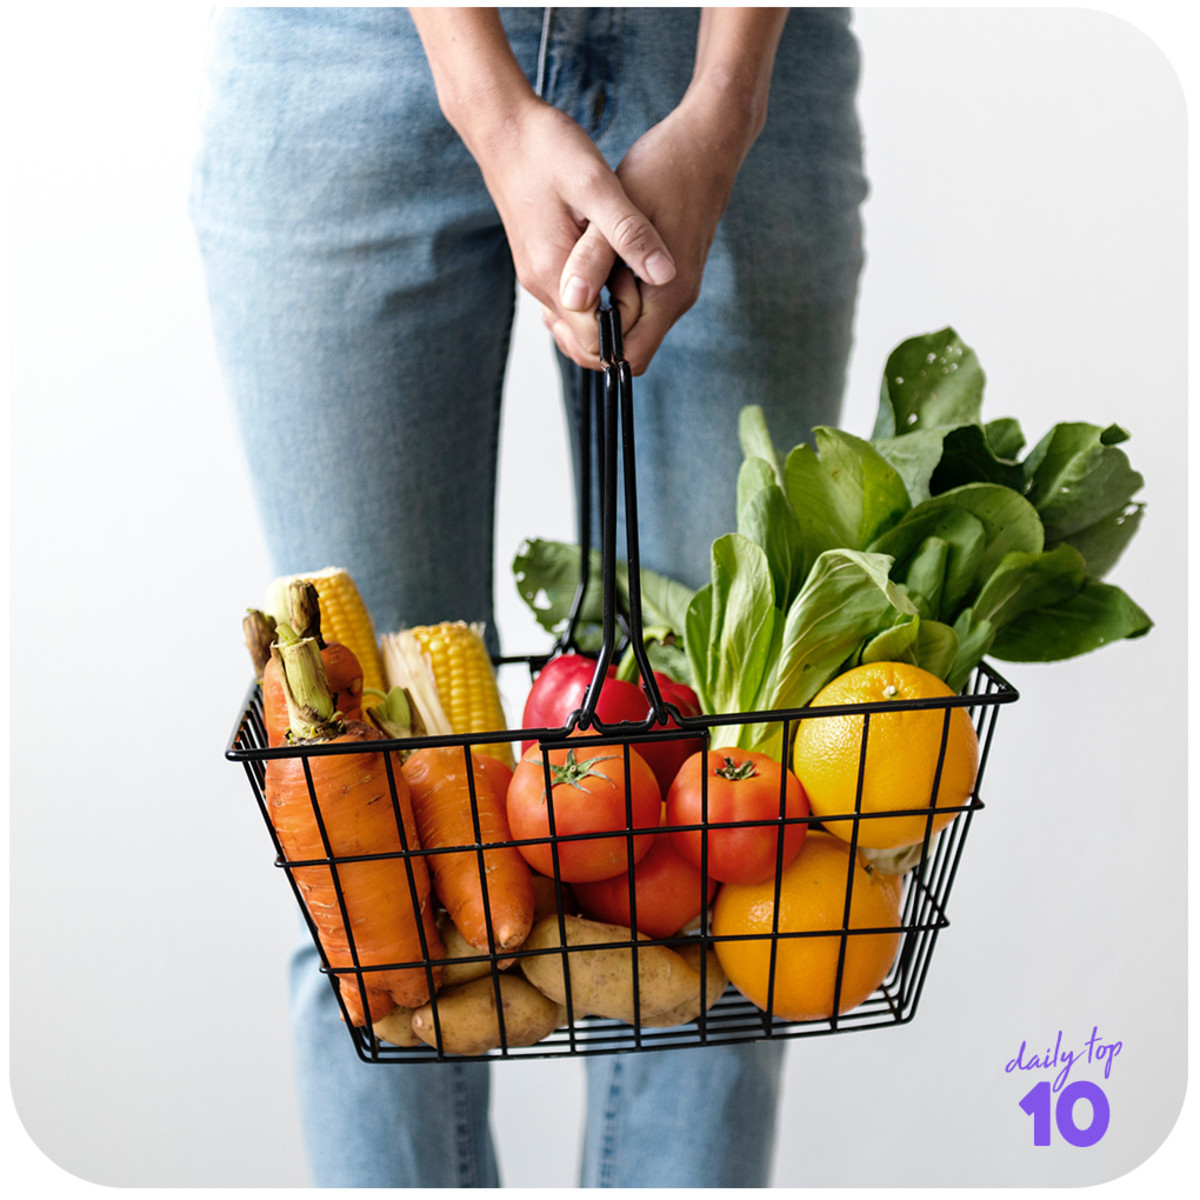 Do a list before shopping and follow it strictly to avoid buying unhealthy food options.